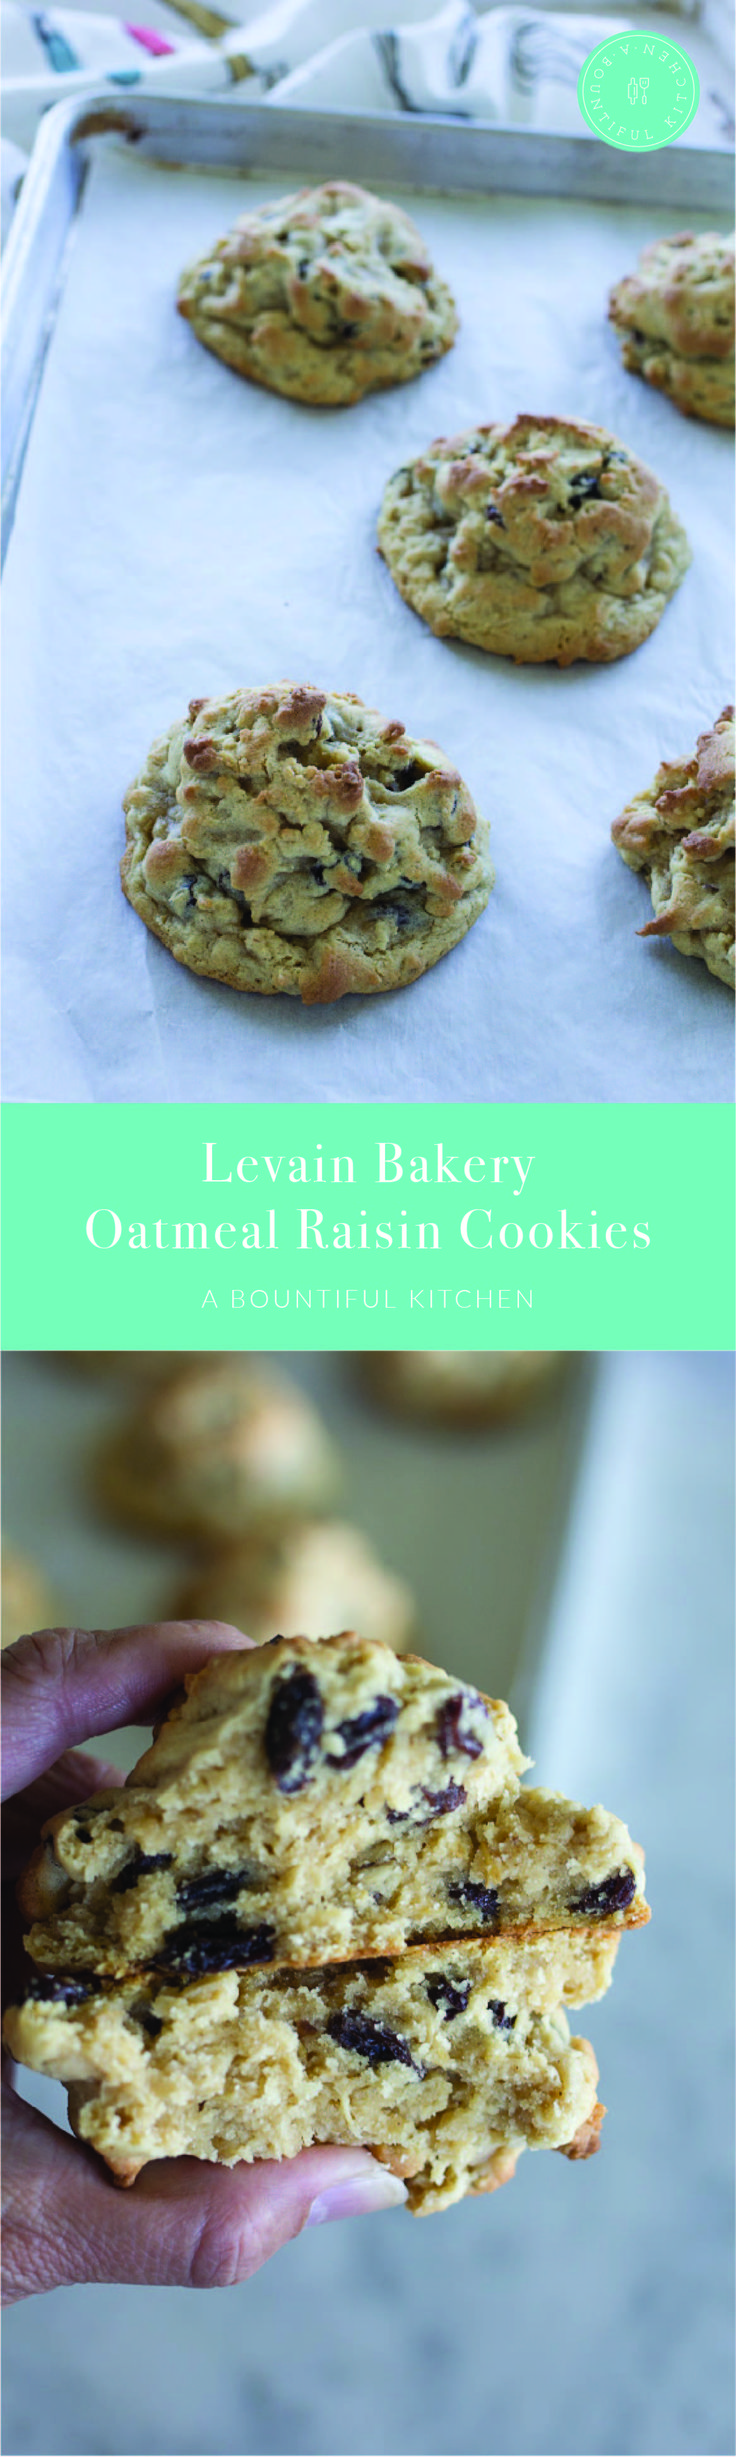 A Bountiful Kitchen: Levain Bakery in New York City makes a serious oatmeal cookie. Thick and chewy,filled with raisins and big enough to be a meal replacement, ABK's Levain Bakery Oatmeal Raisin Cookie is a cookie your granny will love! #levainbakery #copycatrecipe #oatmealraisin #cookie #dessert